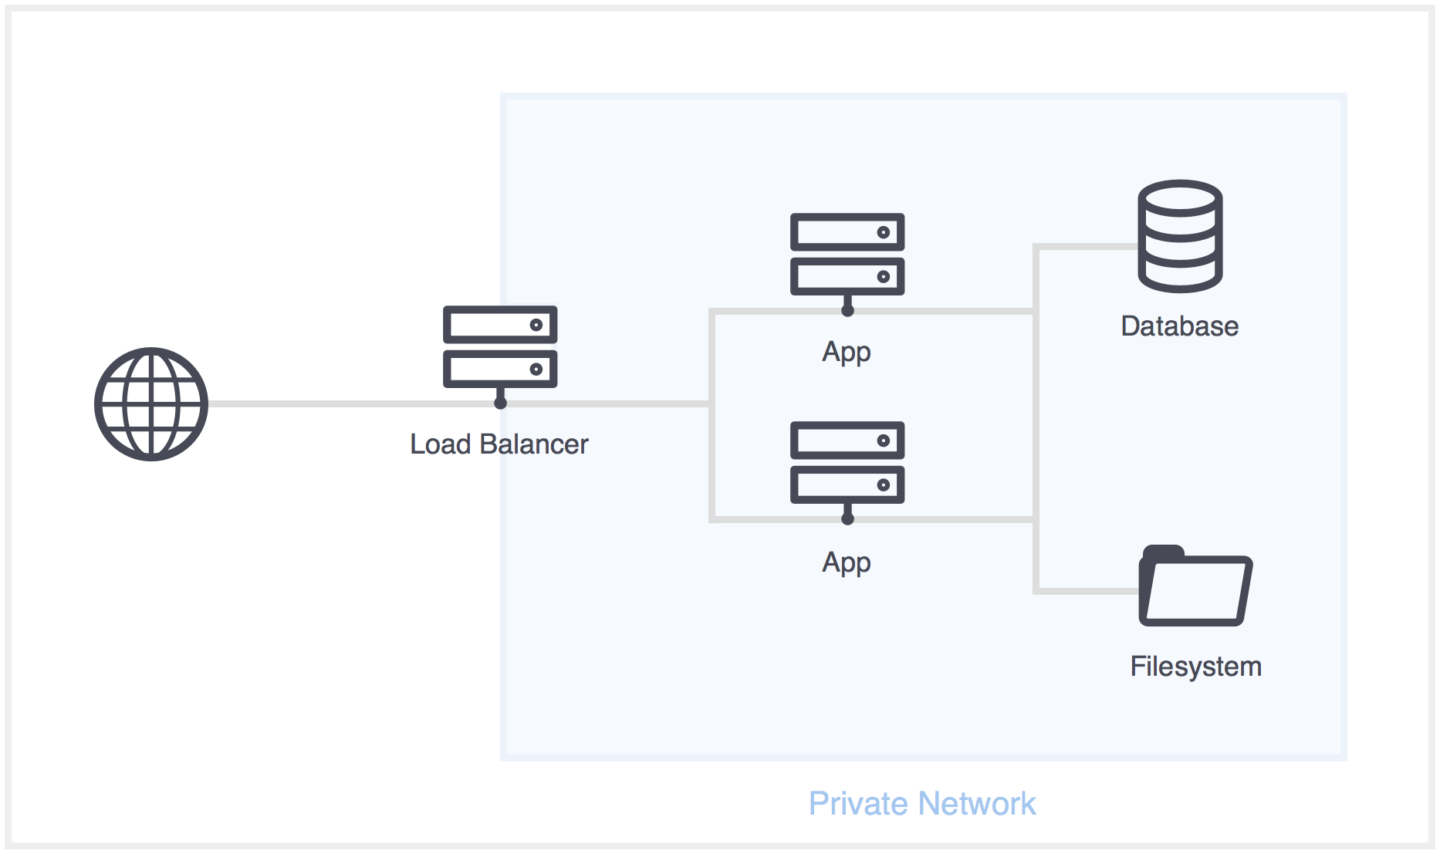 Planned server architecture